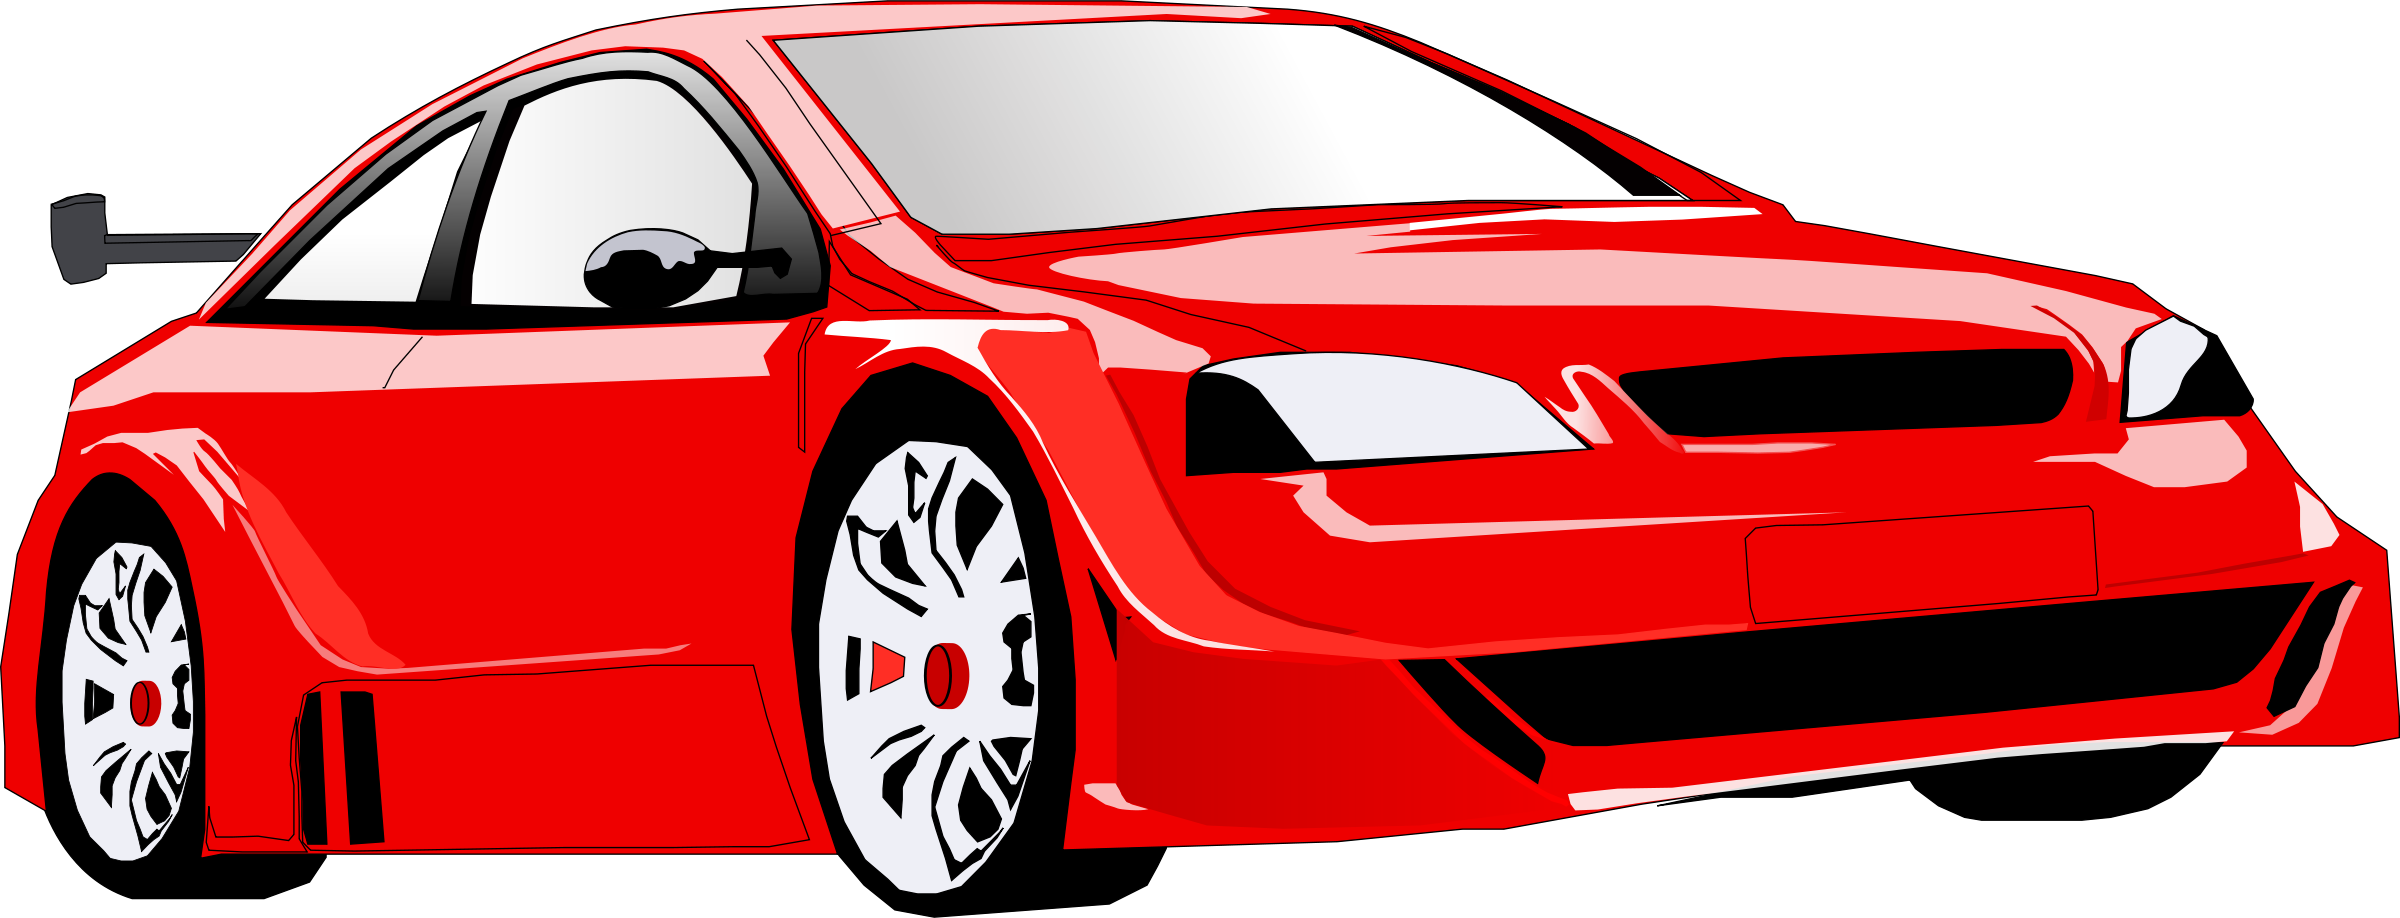 Car clipart background vector royalty free Sports Car Clipart Background | Art | Pinterest | Sports cars and ... vector royalty free